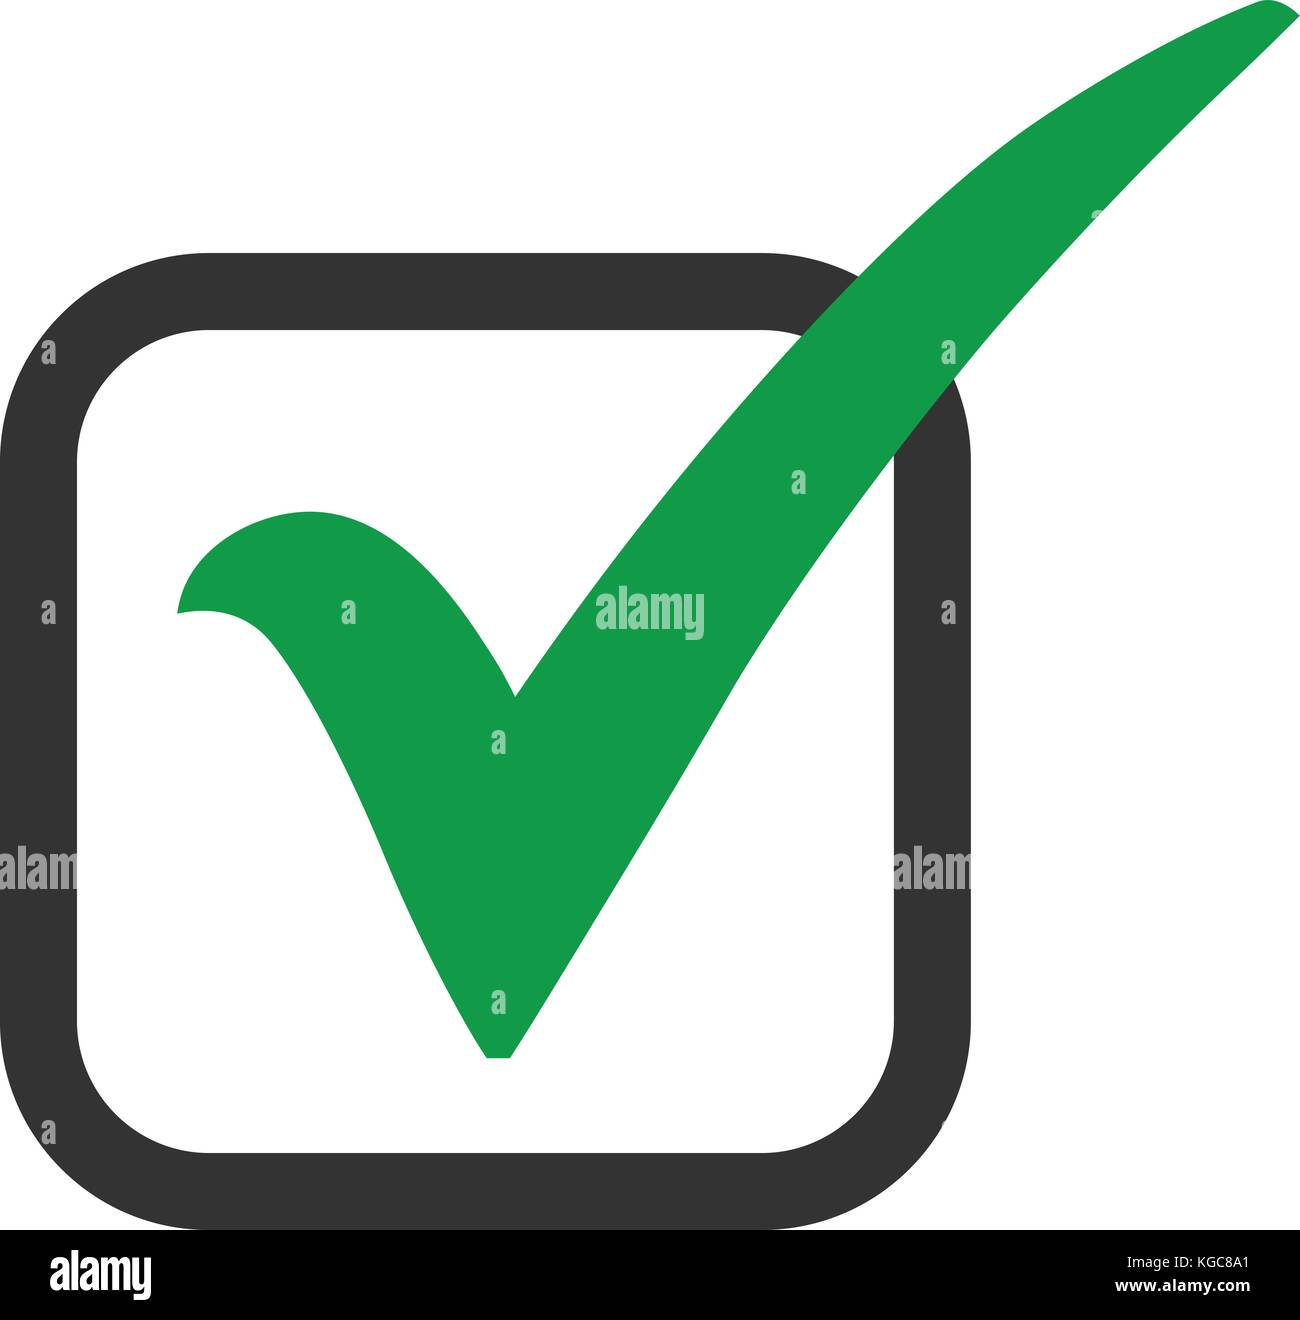 Green check mark icon in a box tick symbol in green color vector green check mark icon in a box tick symbol in green color vector stock vector art illustration vector image 164997785 alamy biocorpaavc Image collections